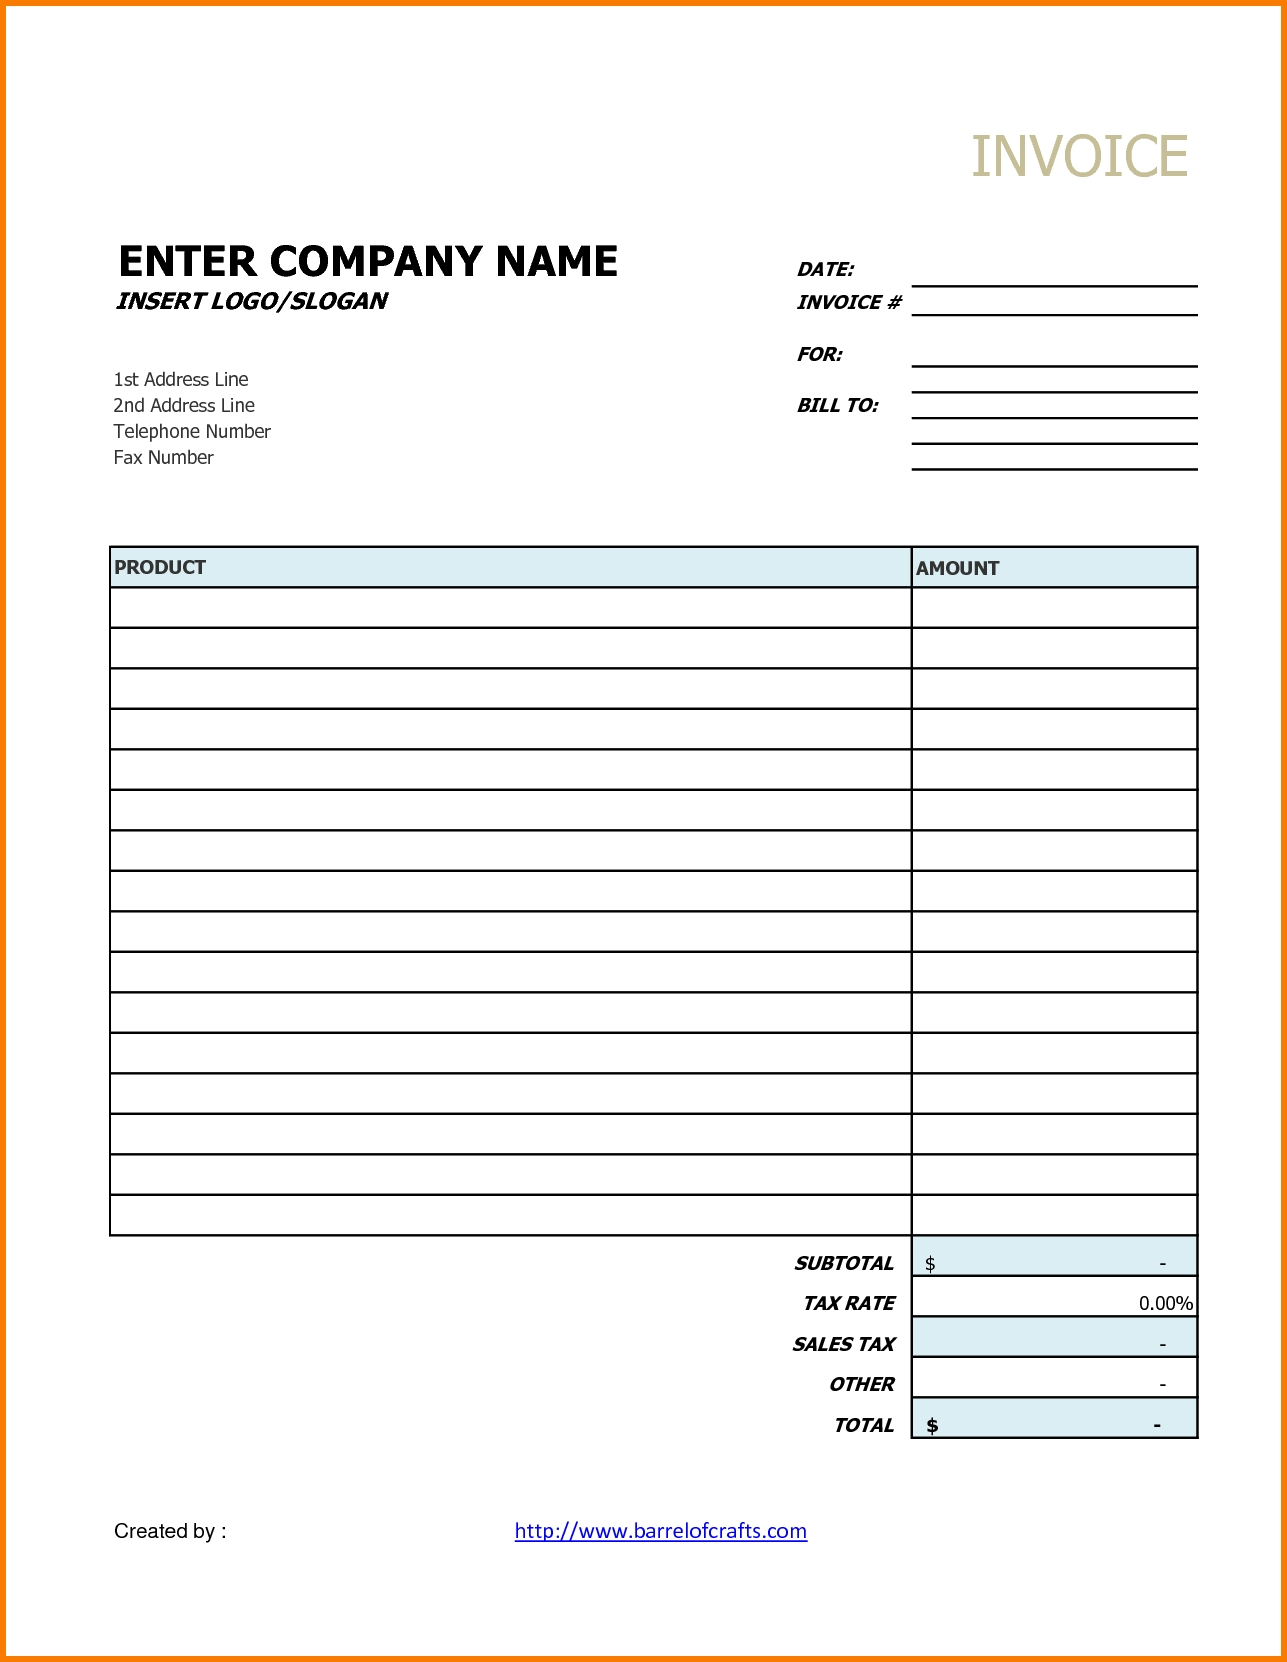 printable invoice template your sourche for printable invoice generic invoice template free